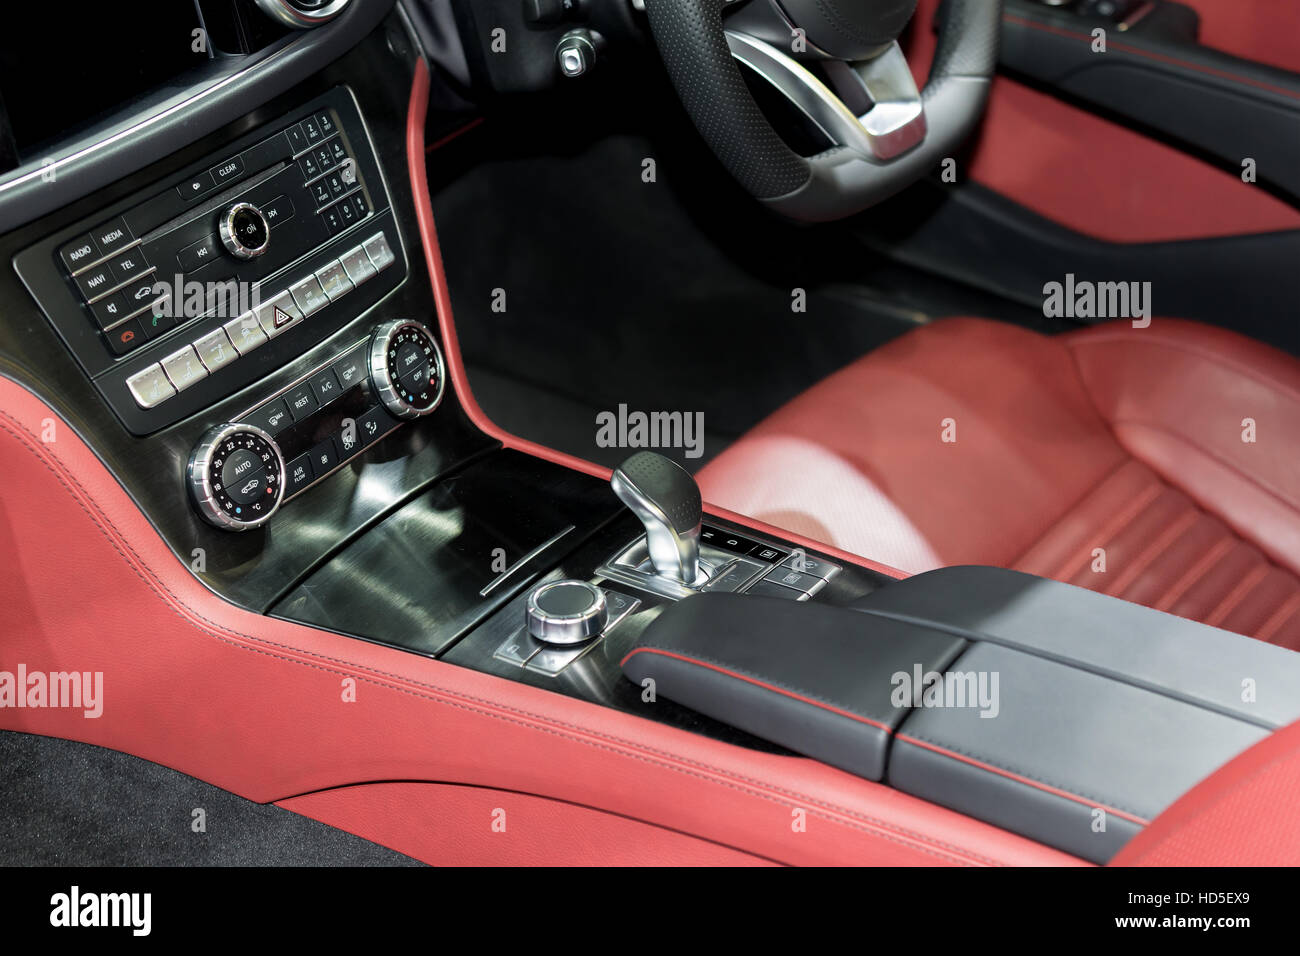 Red luxury car Interior with steering wheel, shift lever and air condition and radio button control in car - Stock Image